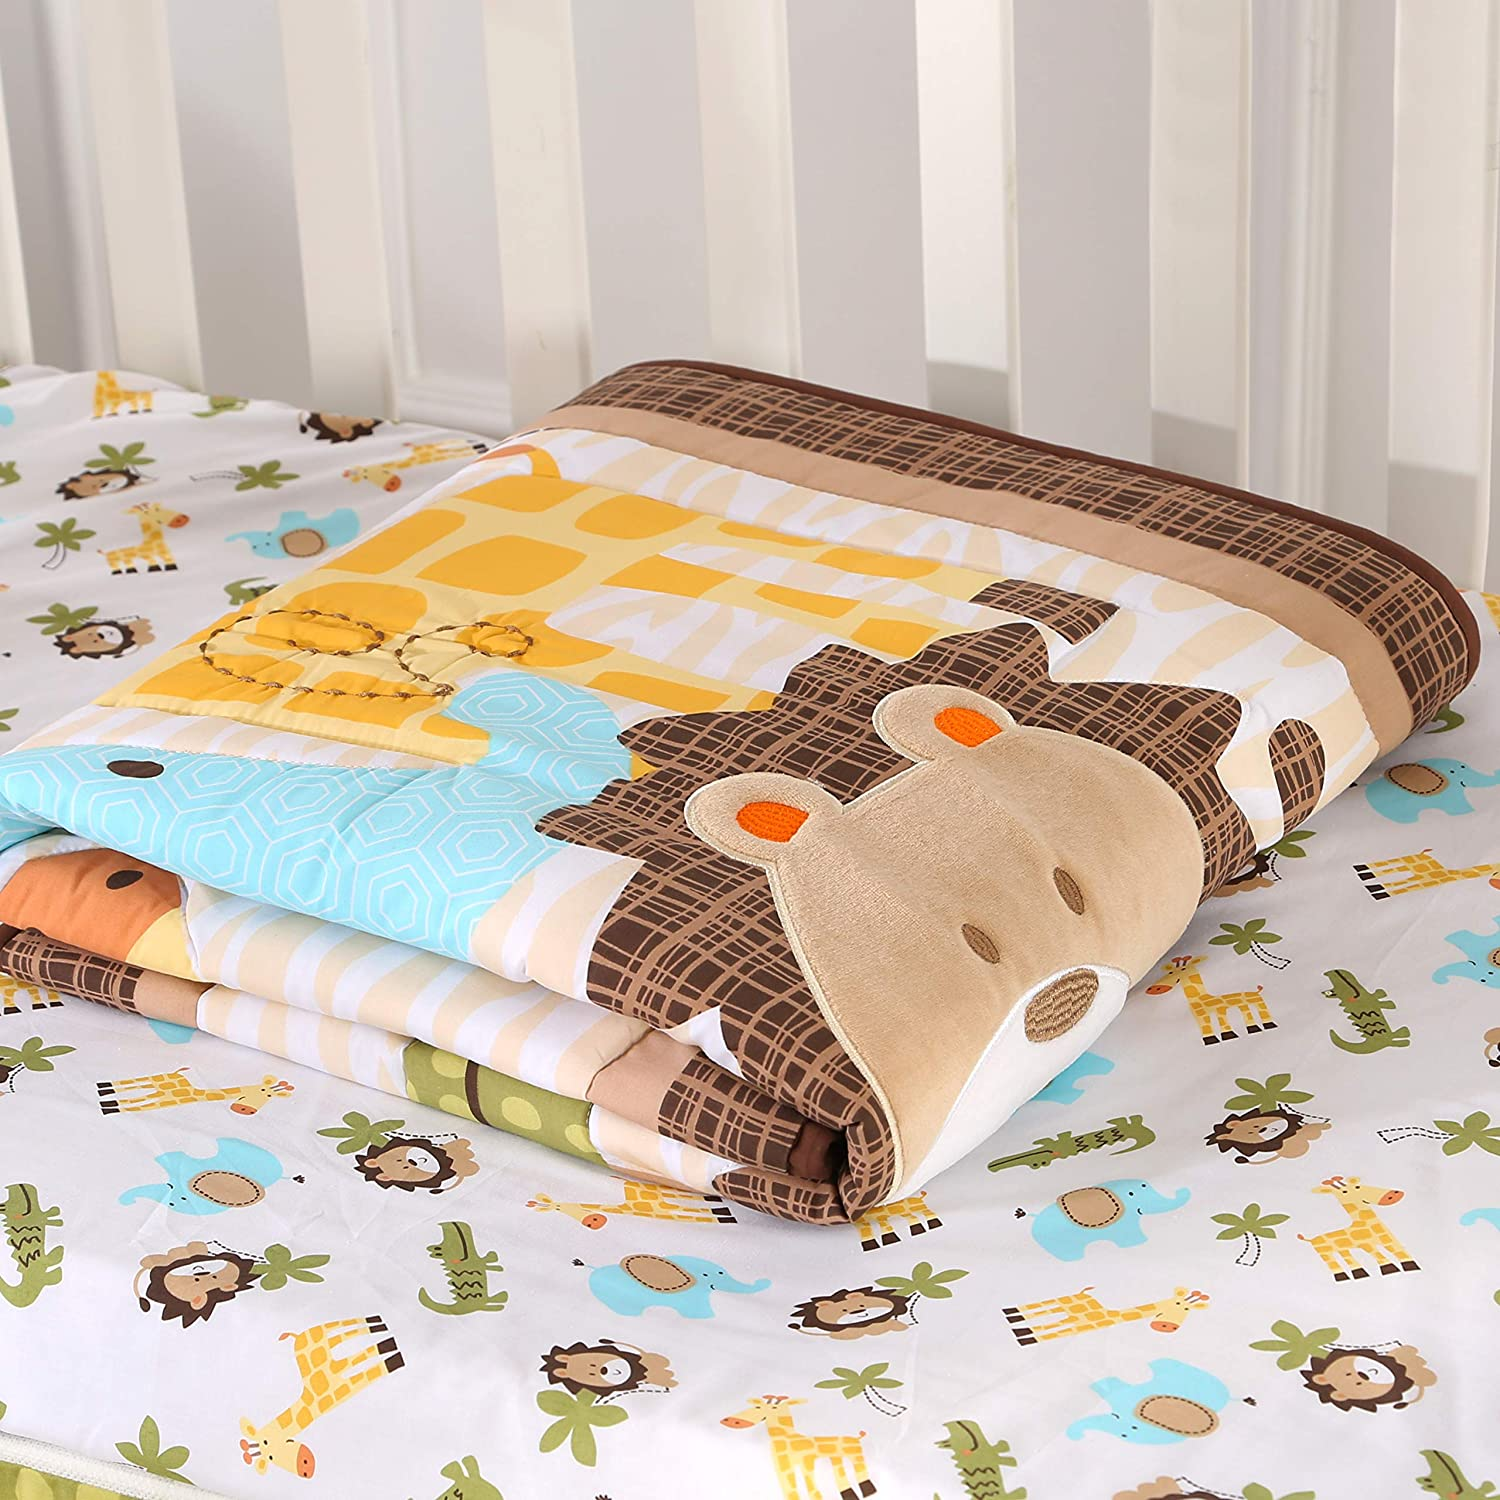 Wowelife Jungle Bedding Crib Set for Baby Lion Elephant Giraffe and Crocodile Baby Boy Crib Bedding Sets with Diaper Stacker Brown-9 Piece